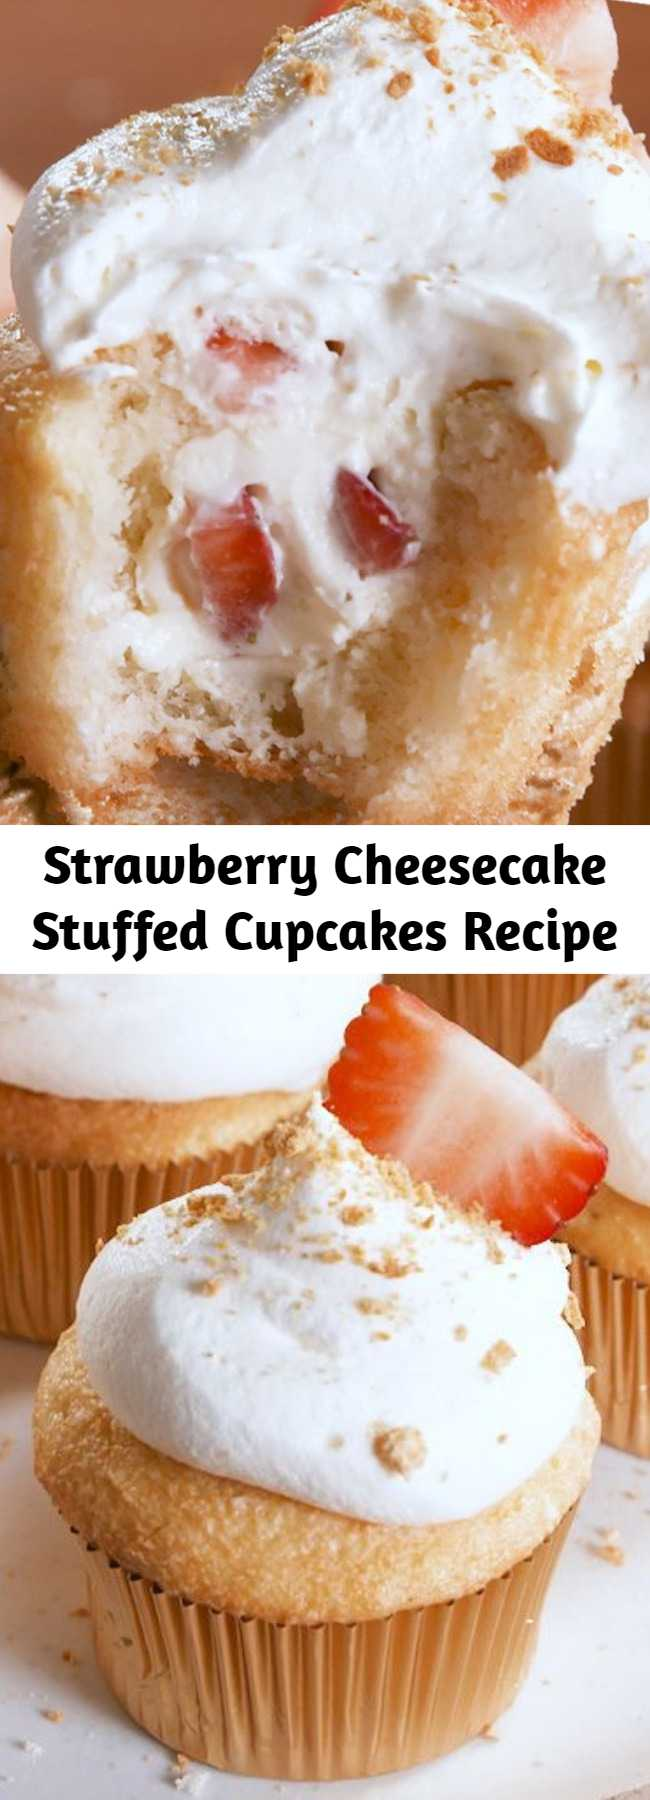 Easy Strawberry Cheesecake Stuffed Cupcakes Recipe - Strawberry Cheesecake STUFFED Cupcakes are your two favorite desserts in one. #recipe #easyrecipe #easy #dessert #dessertrecipe #baking #cheesecake #cheese #cake #whippedcream #berries #fruit #strawberries #cupcakes